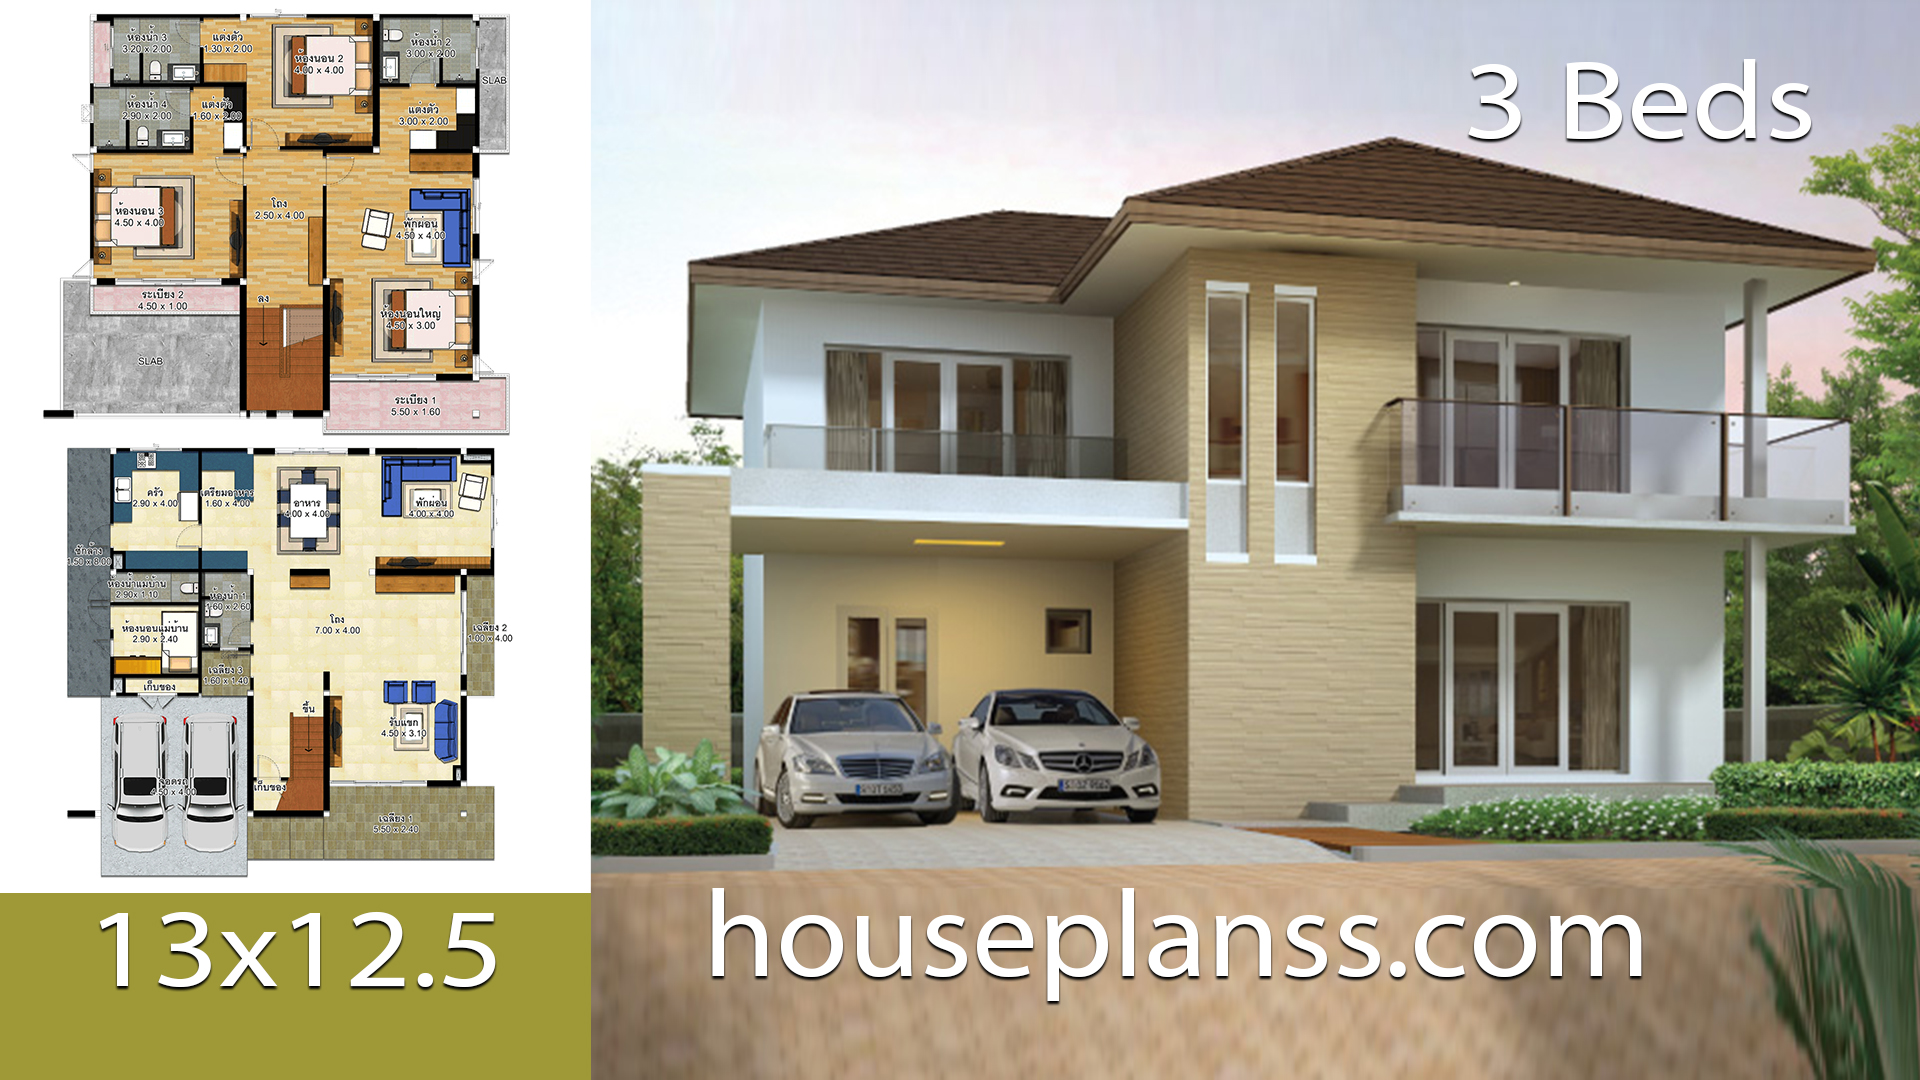 House design idea 13×12.5 with 3 bedrooms